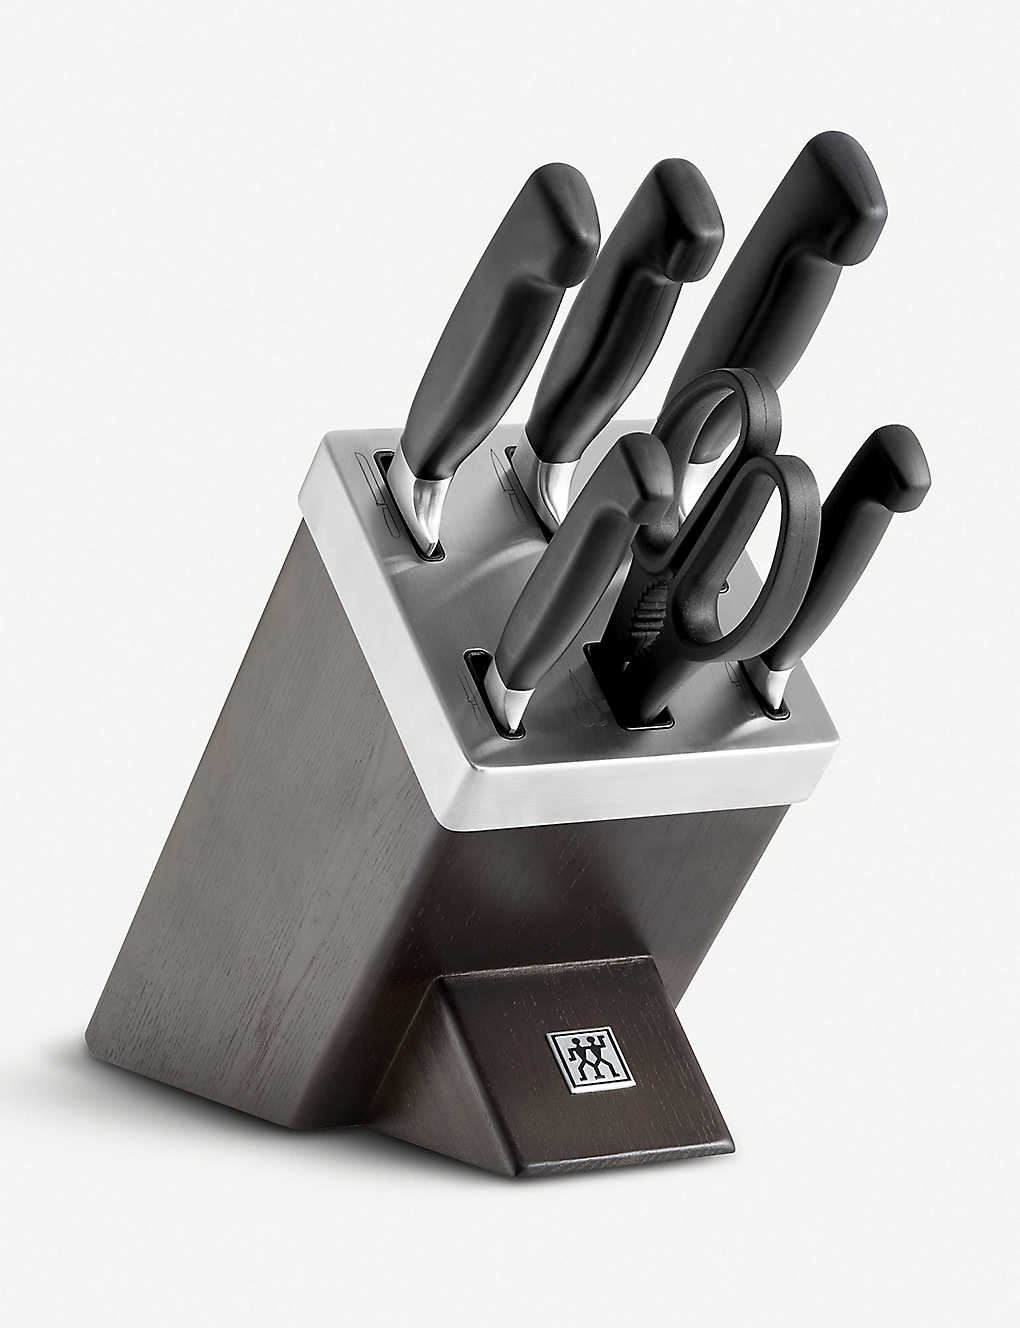 ZWILLING J.A HENCKELS: Ash Wood self-sharpening knife block